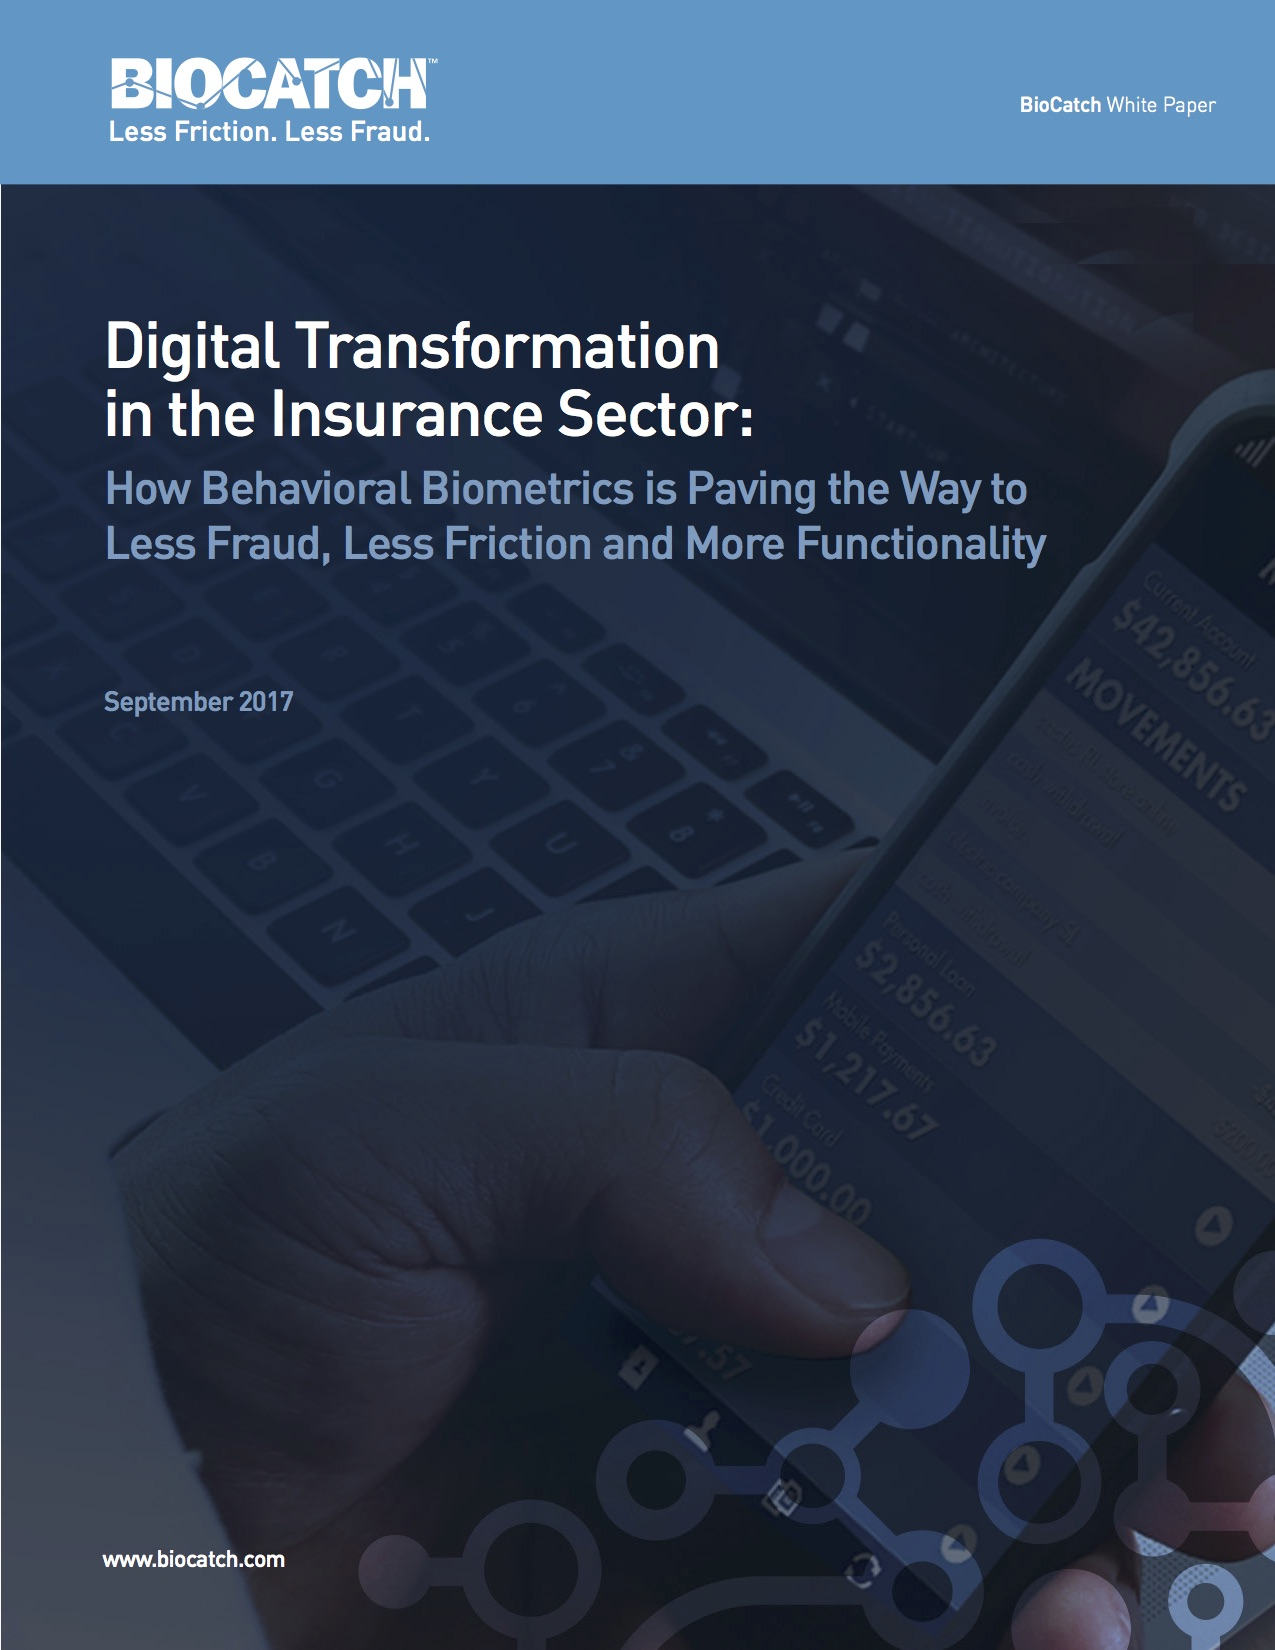 Digital Transformation in the Insurance Sector.jpg